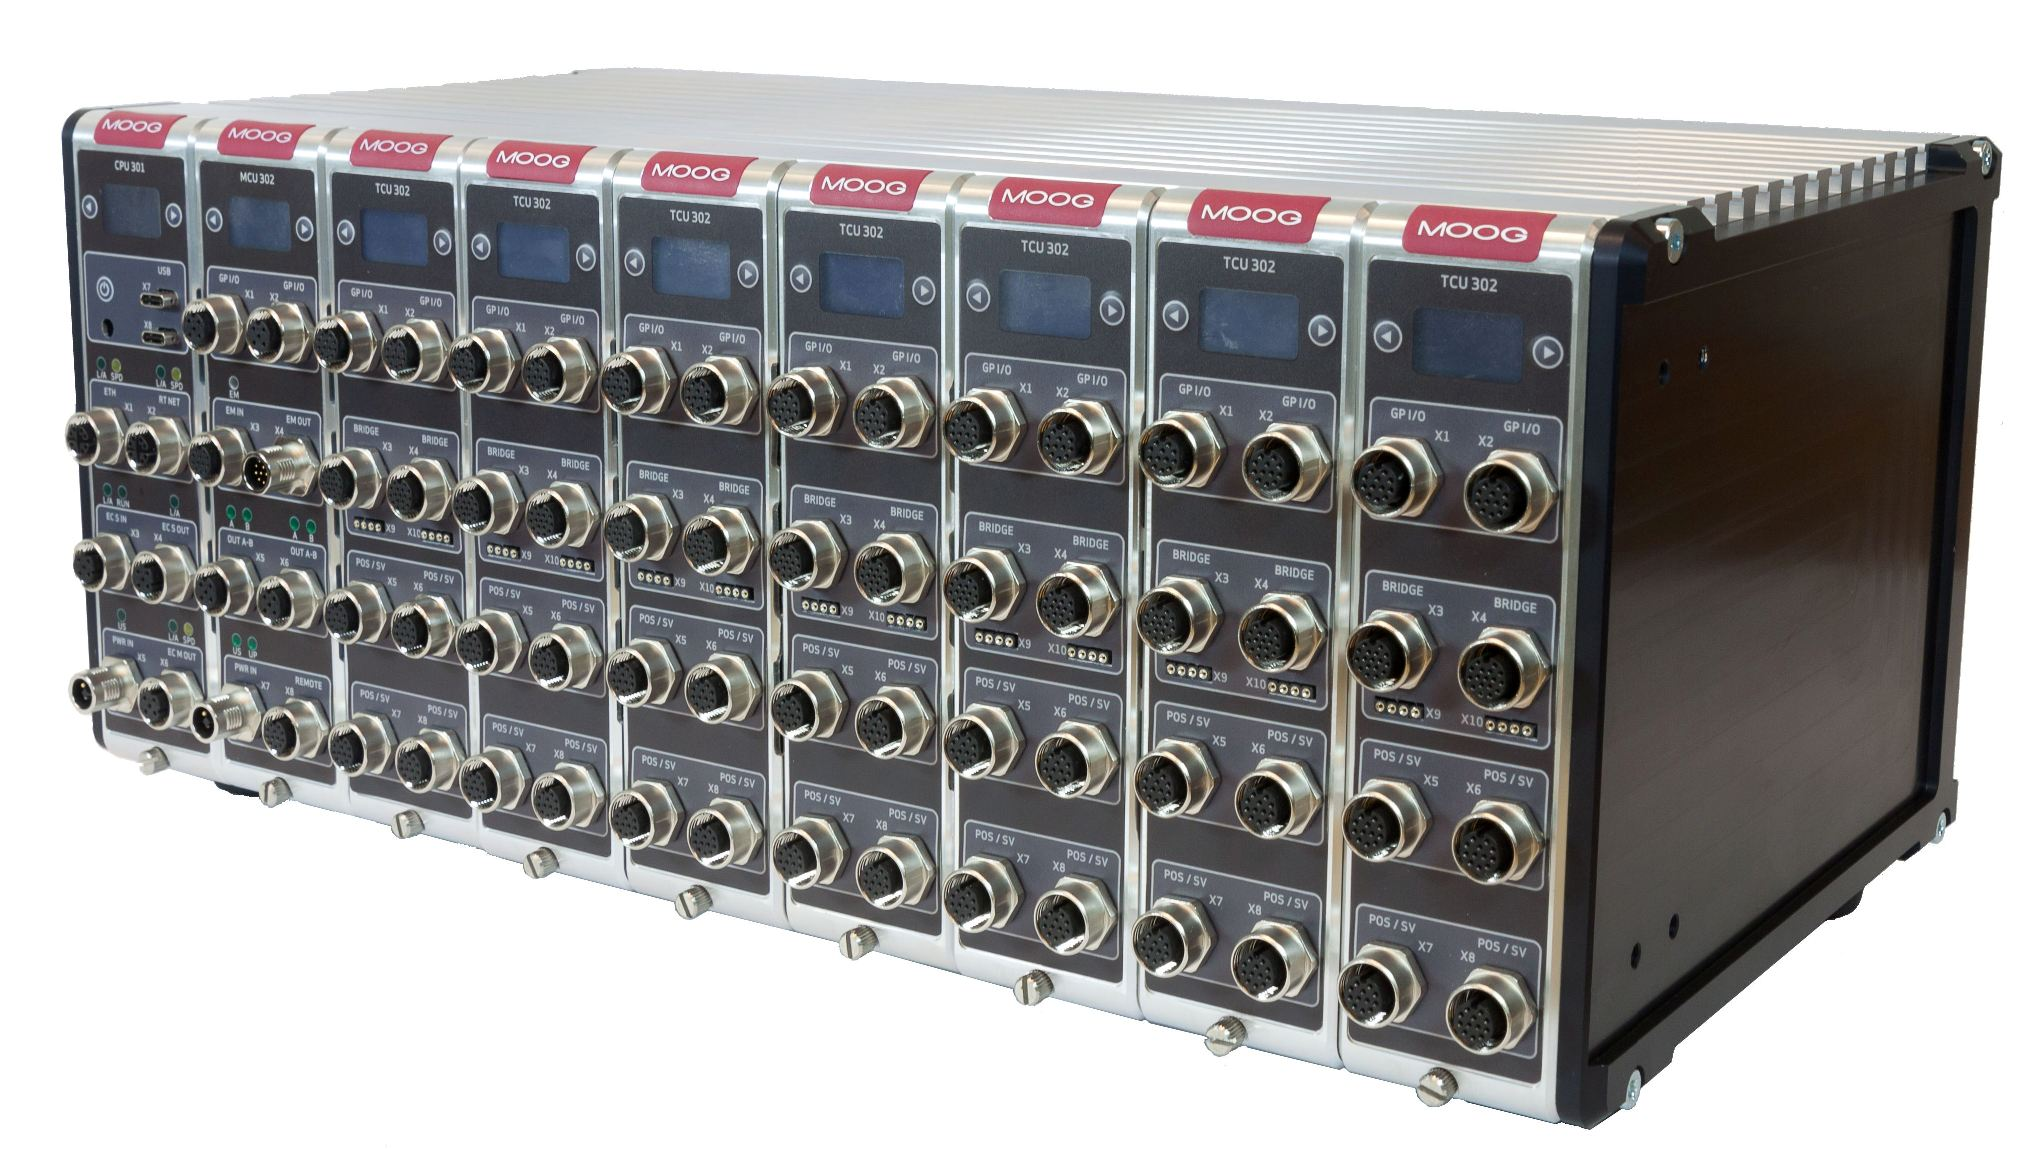 Modular test controller for automotive testing